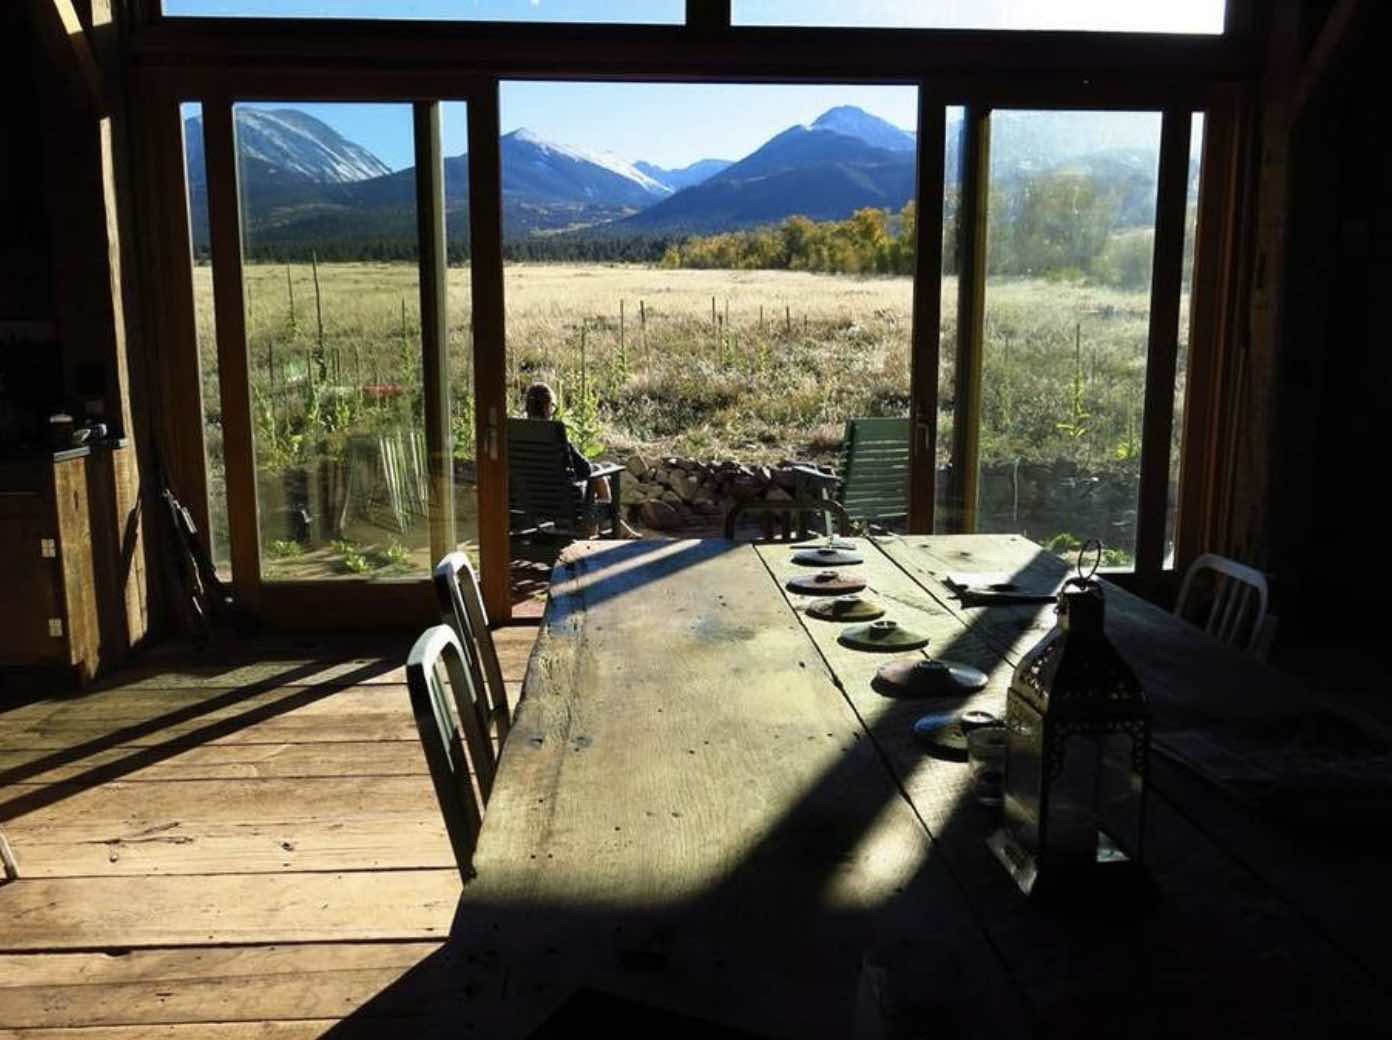 barn-rocky-mountains-airbnb